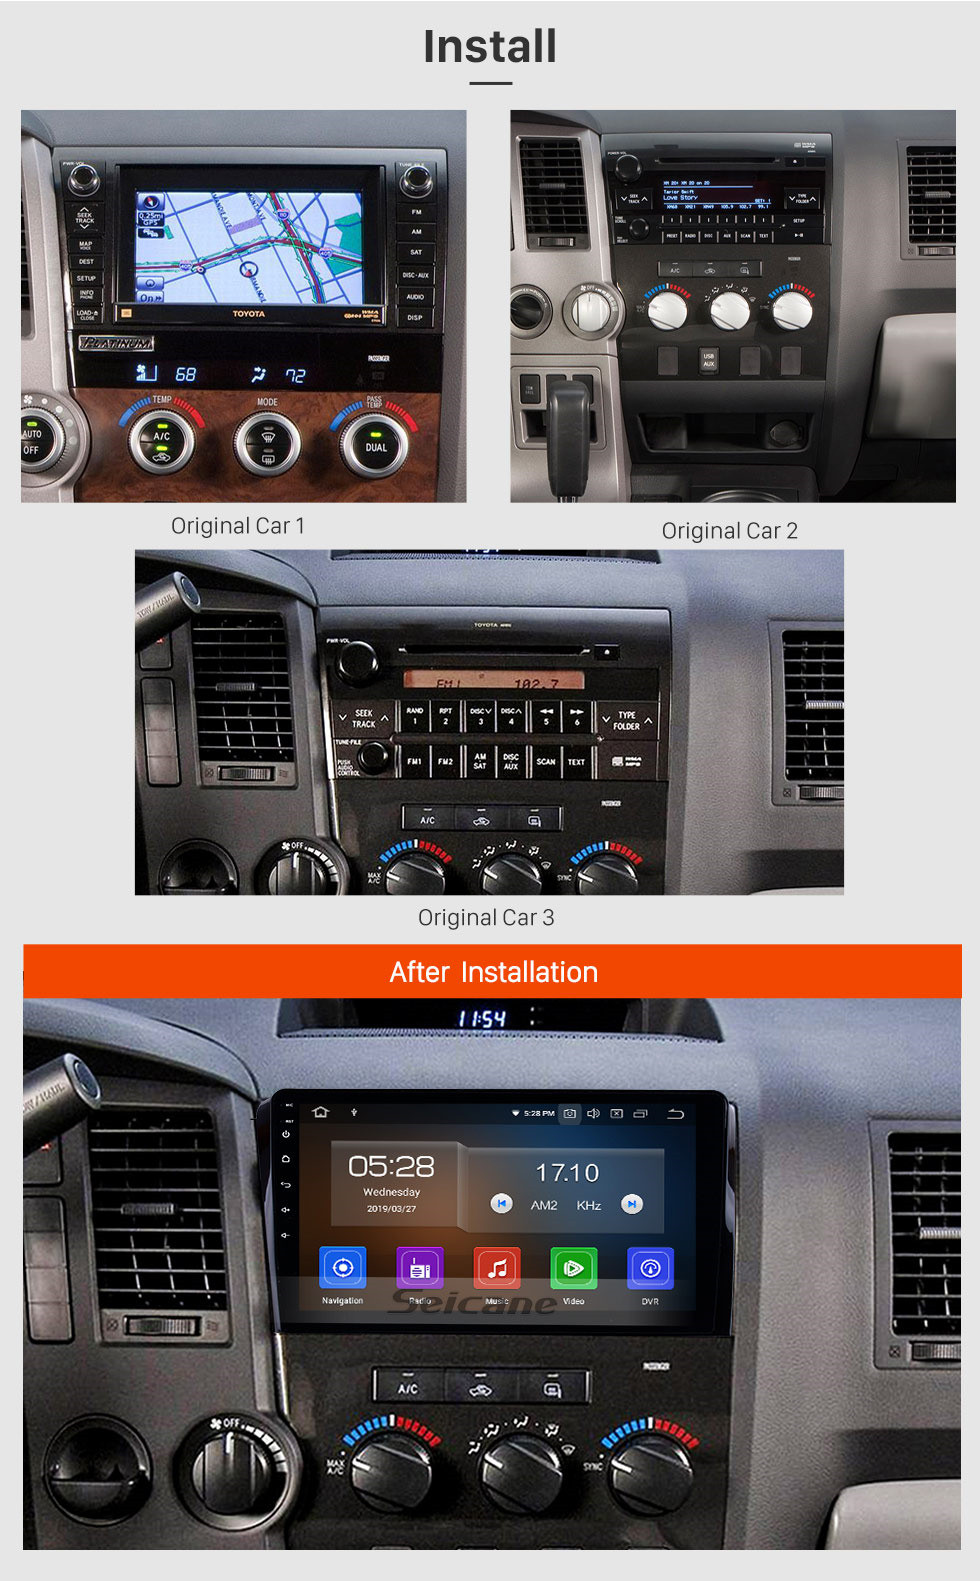 Seicane 10.1 inch Android 10.0 2006-2014 Toyota Sequoia GPS Navigation Radio IPS Full Screen with Music Bluetooth Support 3G WiFi OBD2 Steering Wheel Control